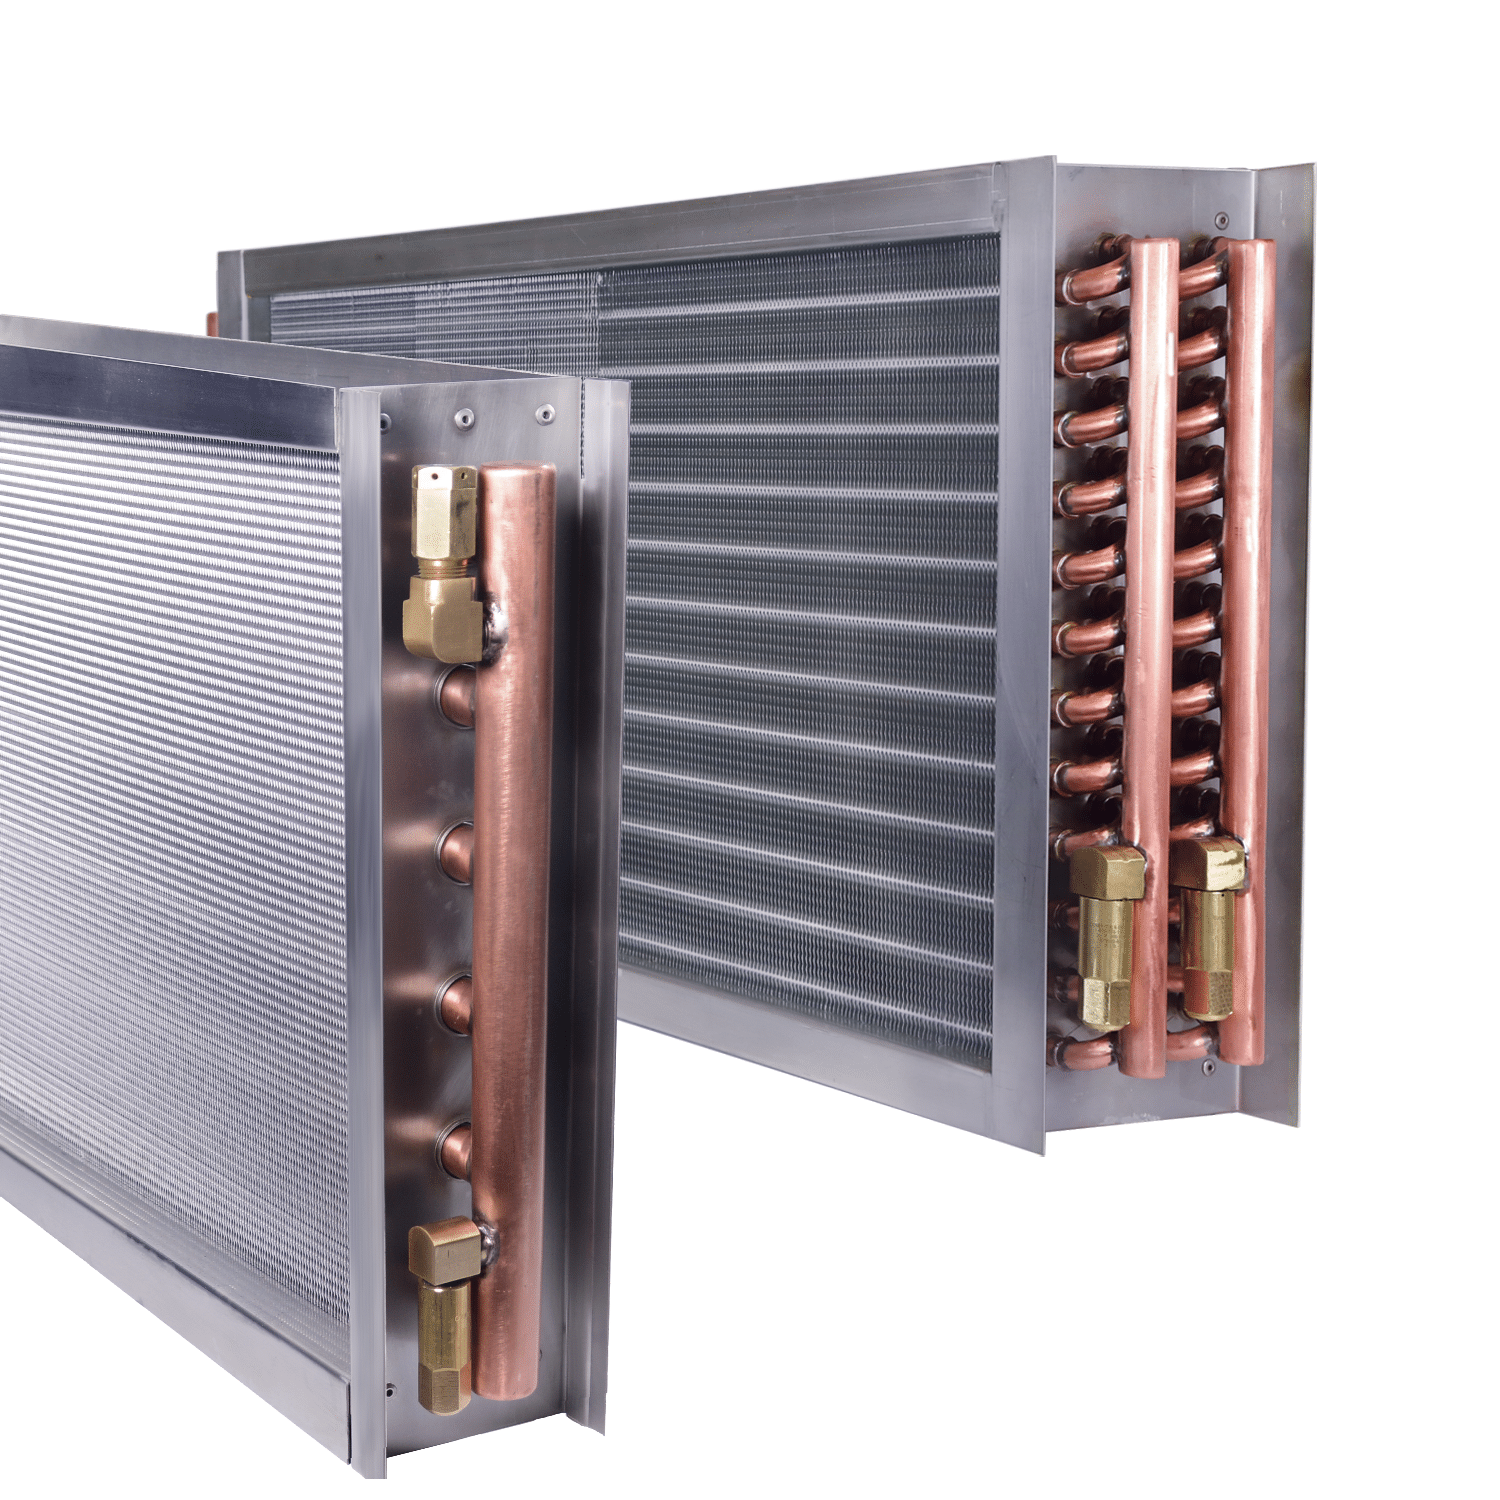 Freeze Block and Smart Coil Technology